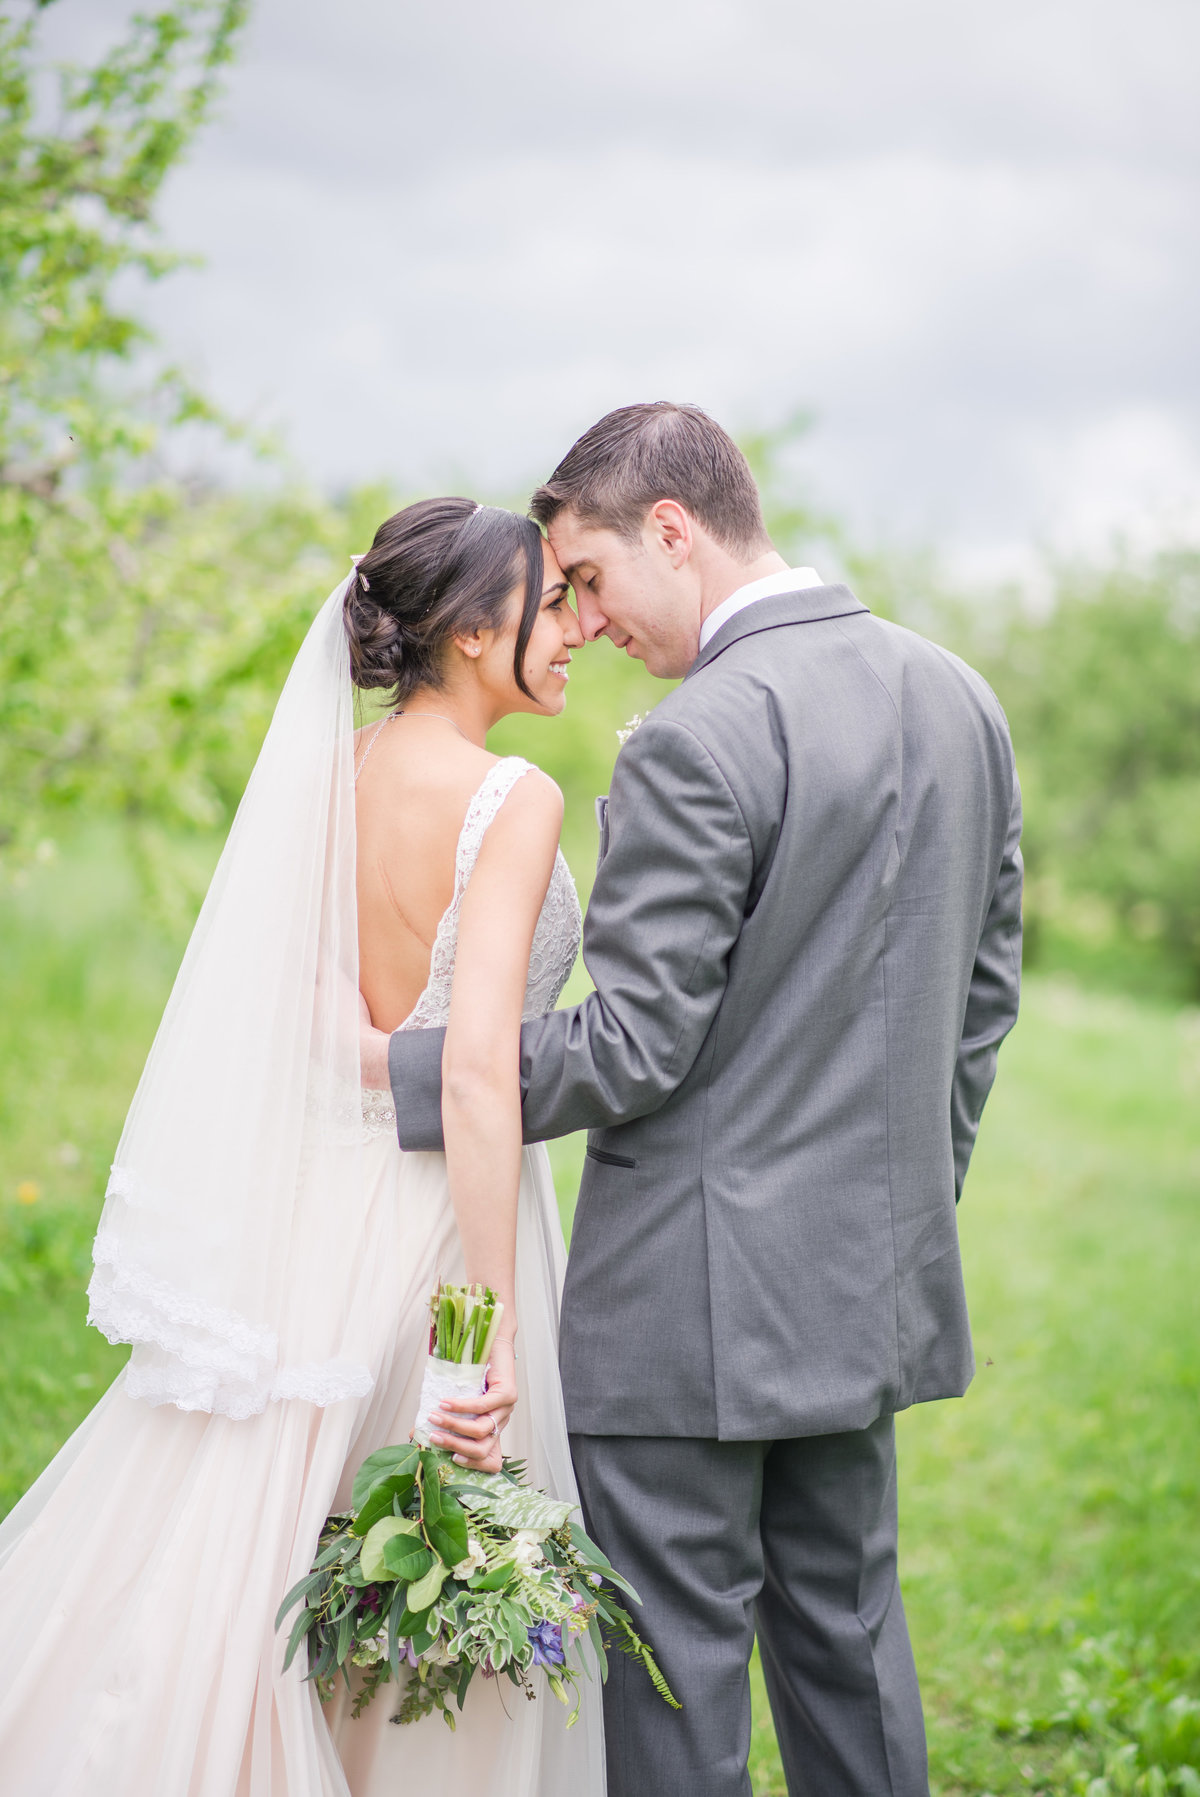 Rustic Barn Wedding Pennsylvania-Rodale Institute Wedding Raquel and Daniel Wedding 22038-20